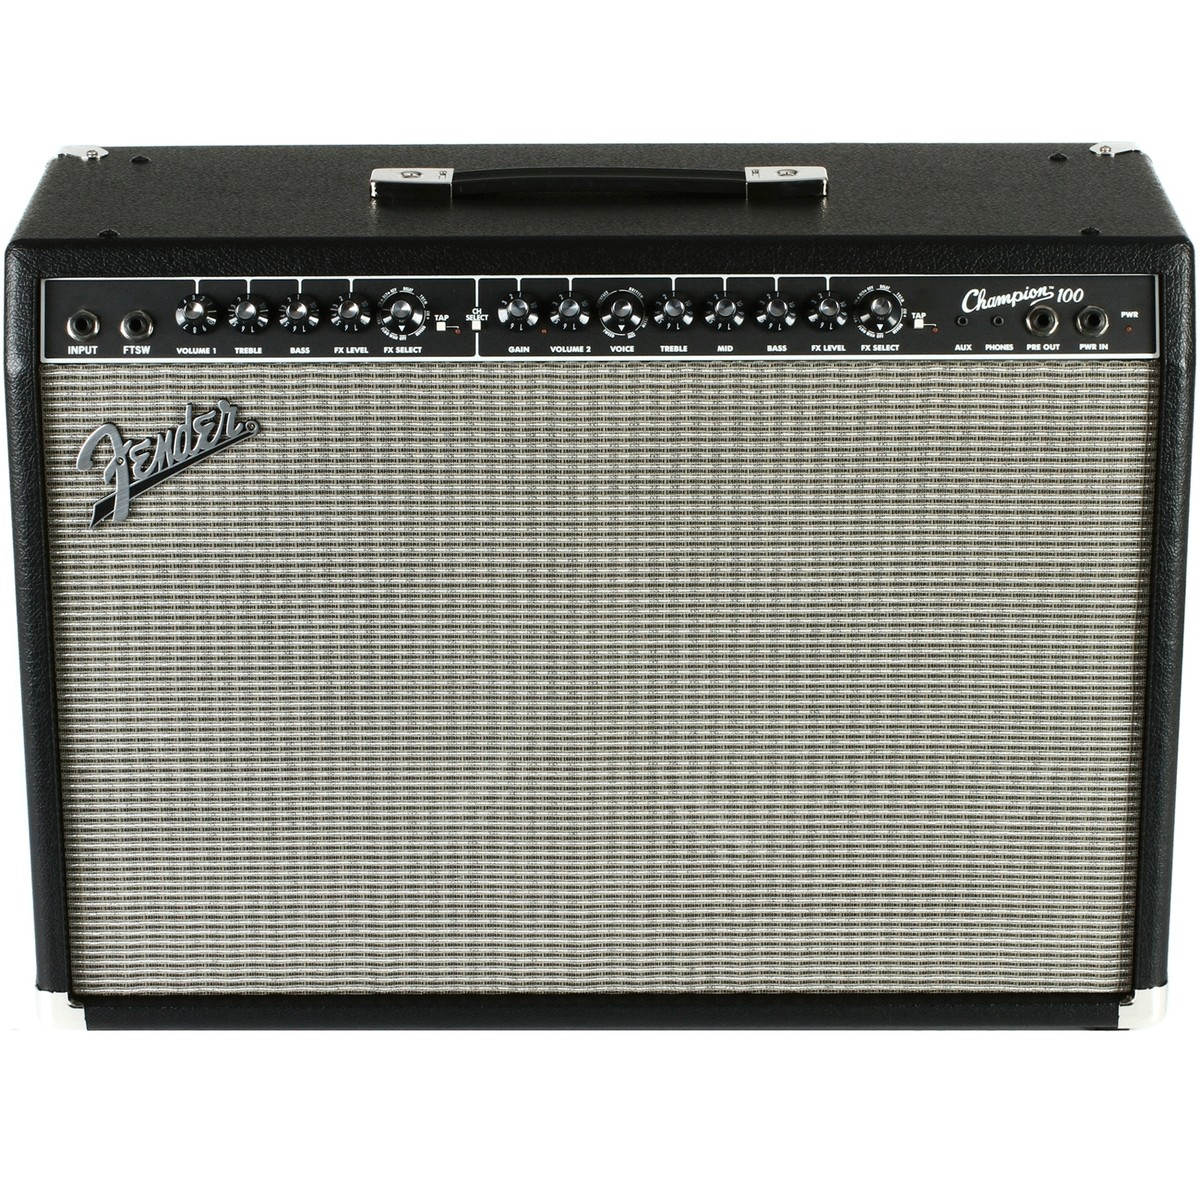 fender champion 100 guitar combo amp with effects b stock at gear4music. Black Bedroom Furniture Sets. Home Design Ideas